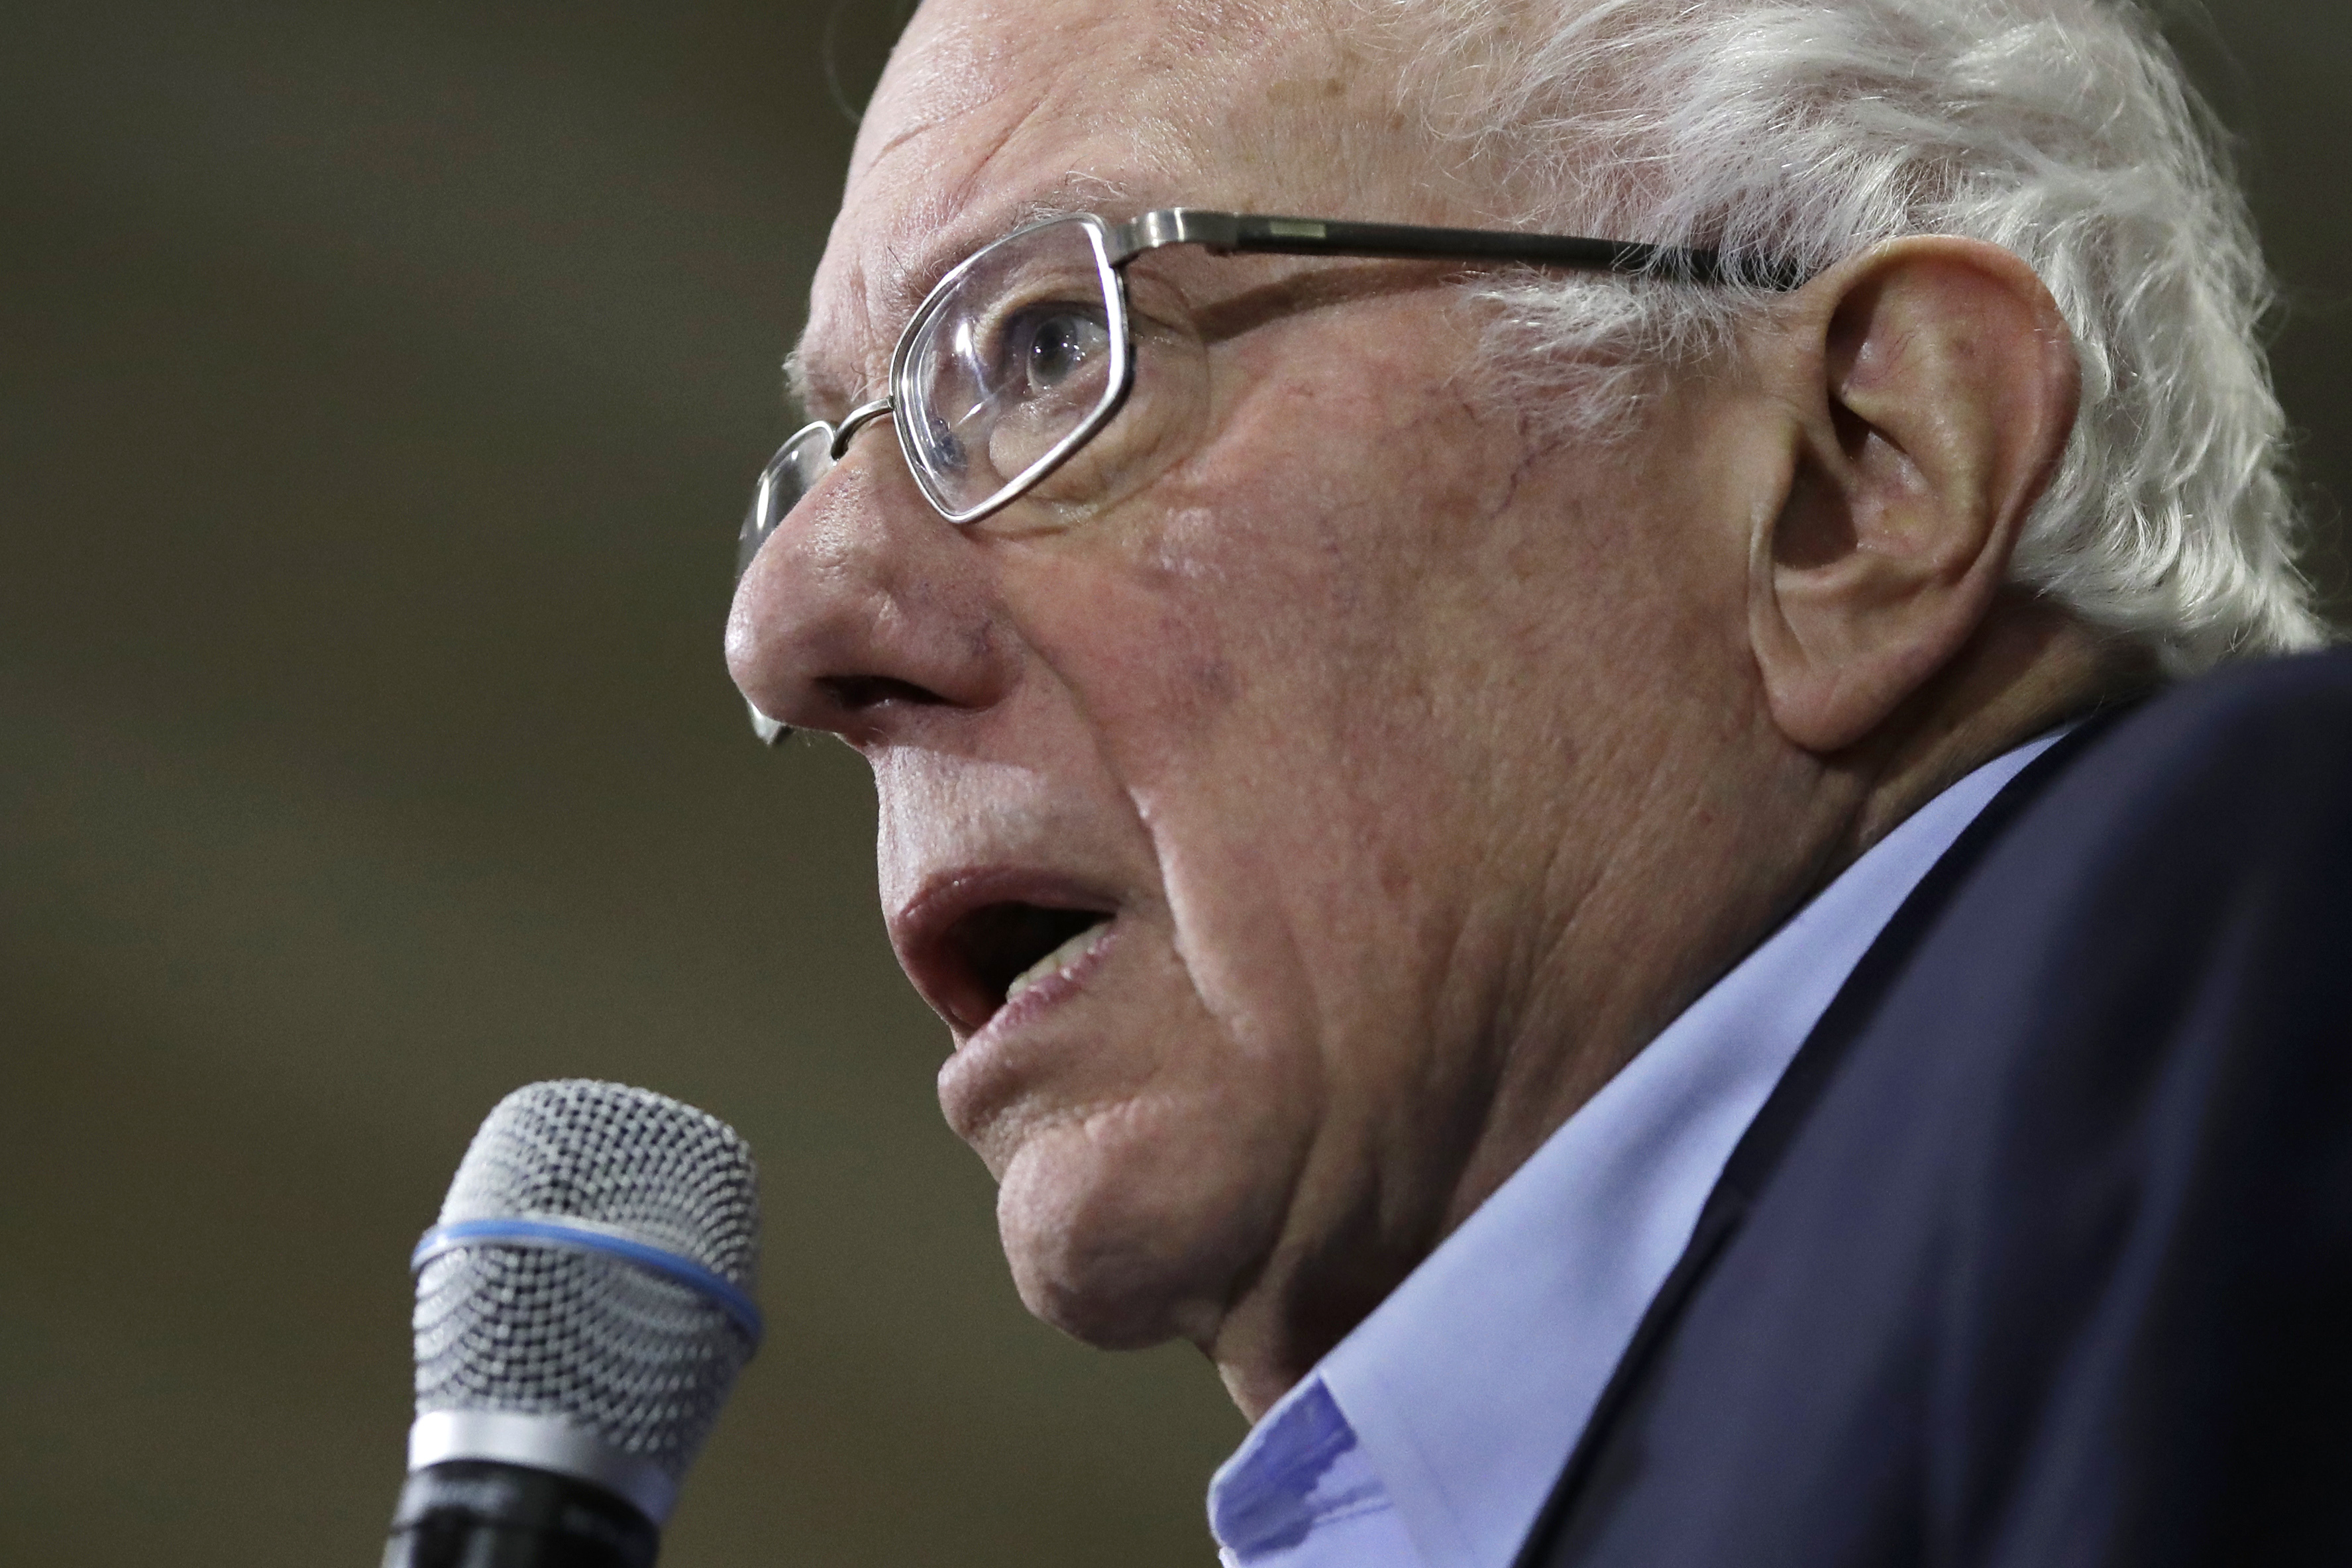 MoveOn urges Bernie Sanders to apologize for embracing support of podcast host Joe Rogan